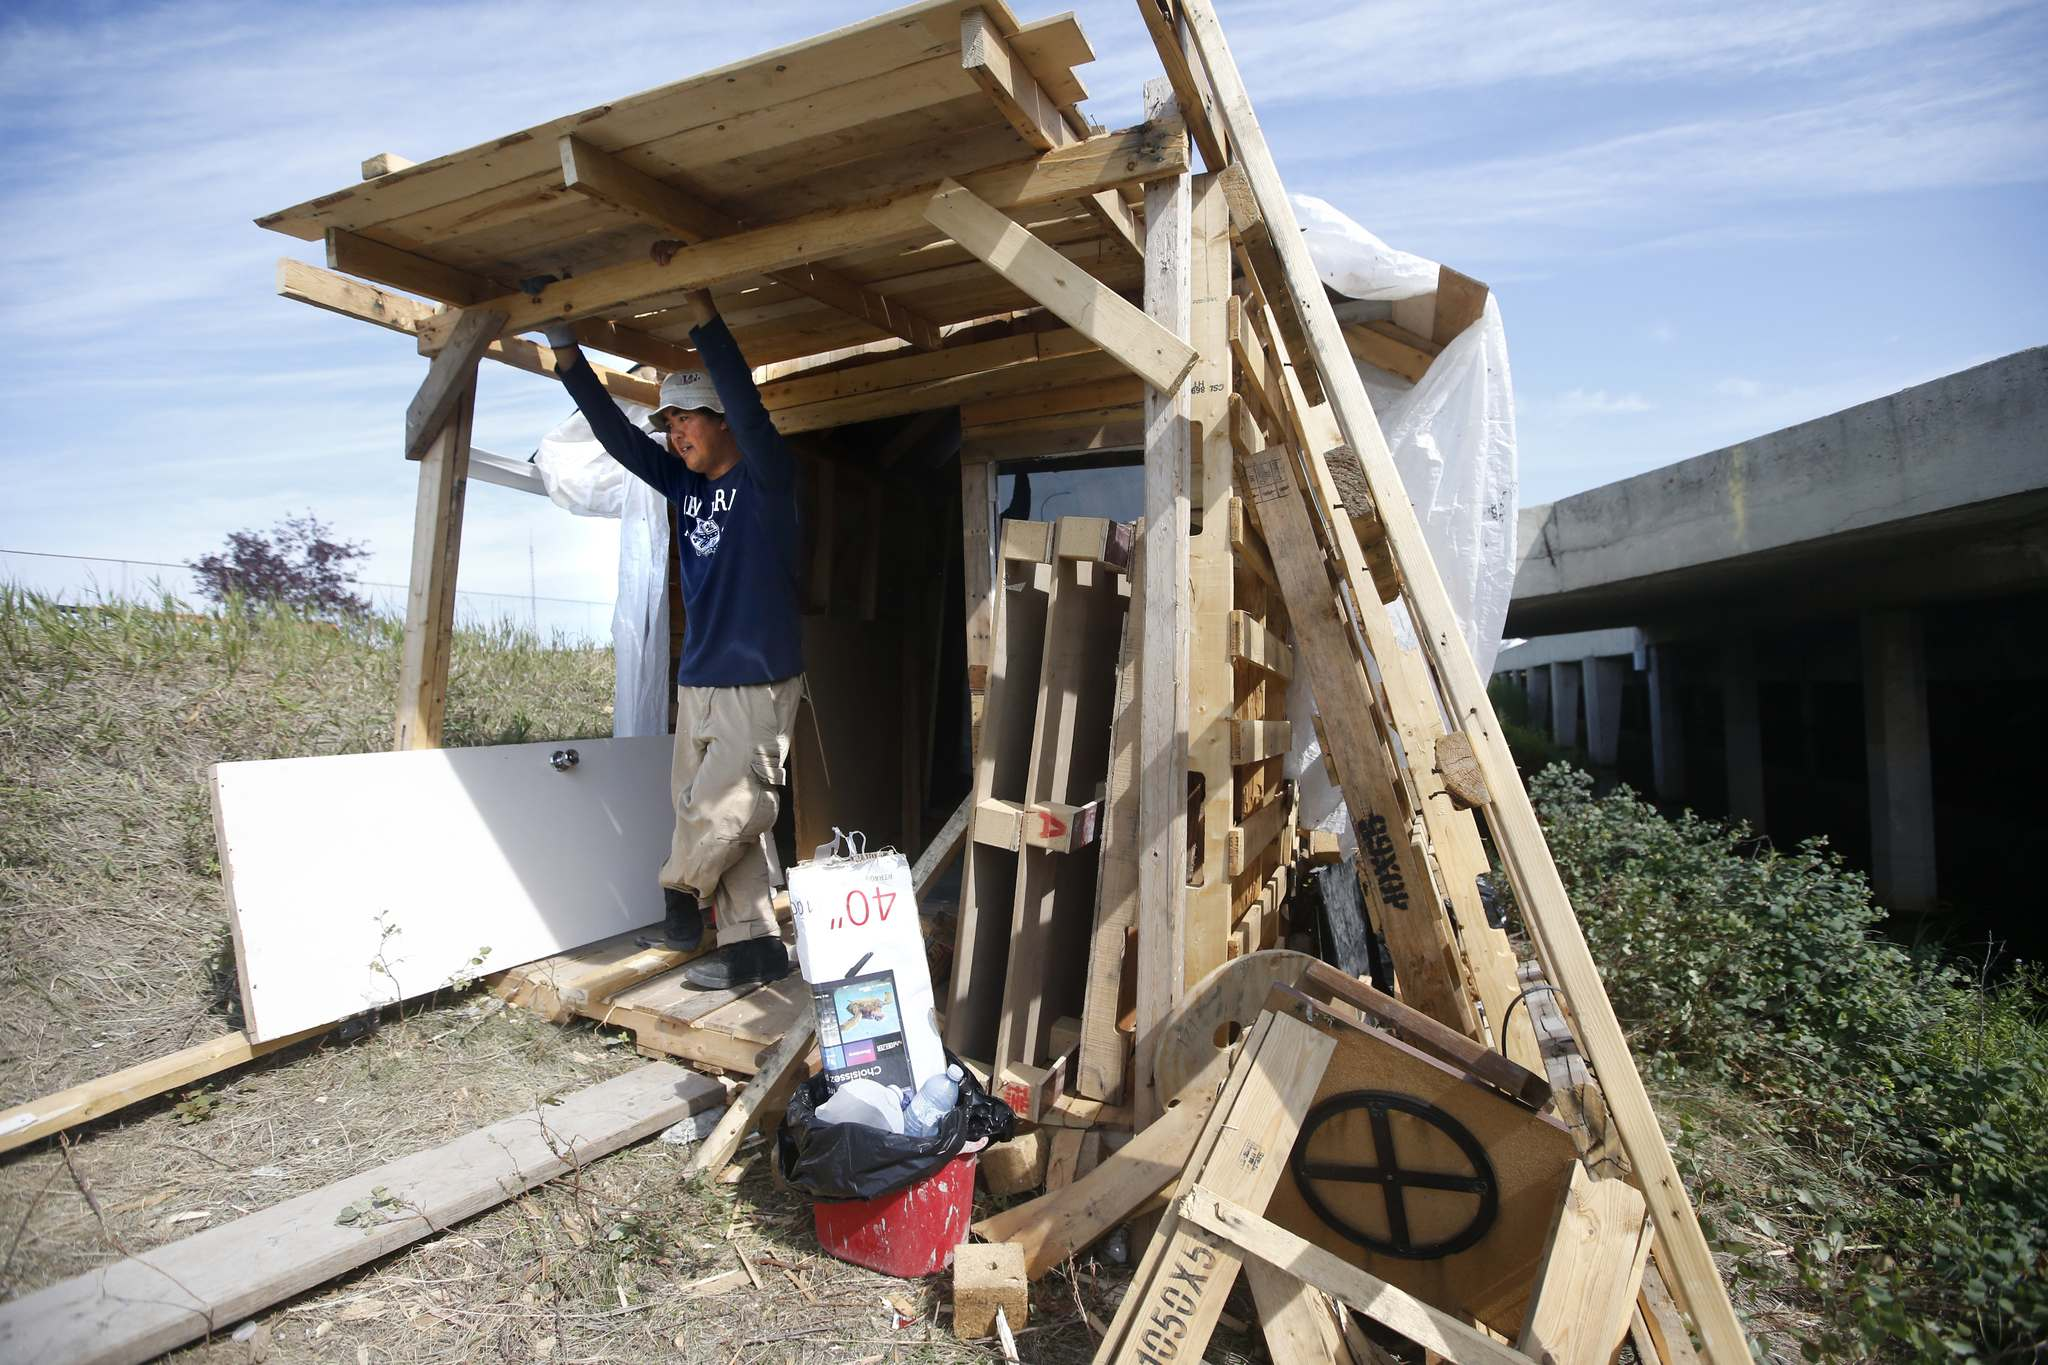 Par said he got pallets from several local businesses and re-used the nails, and got other supplies from Habitat for Humanity and Rona nearby. (John Woods / Winnipeg Free Press)</p></p>